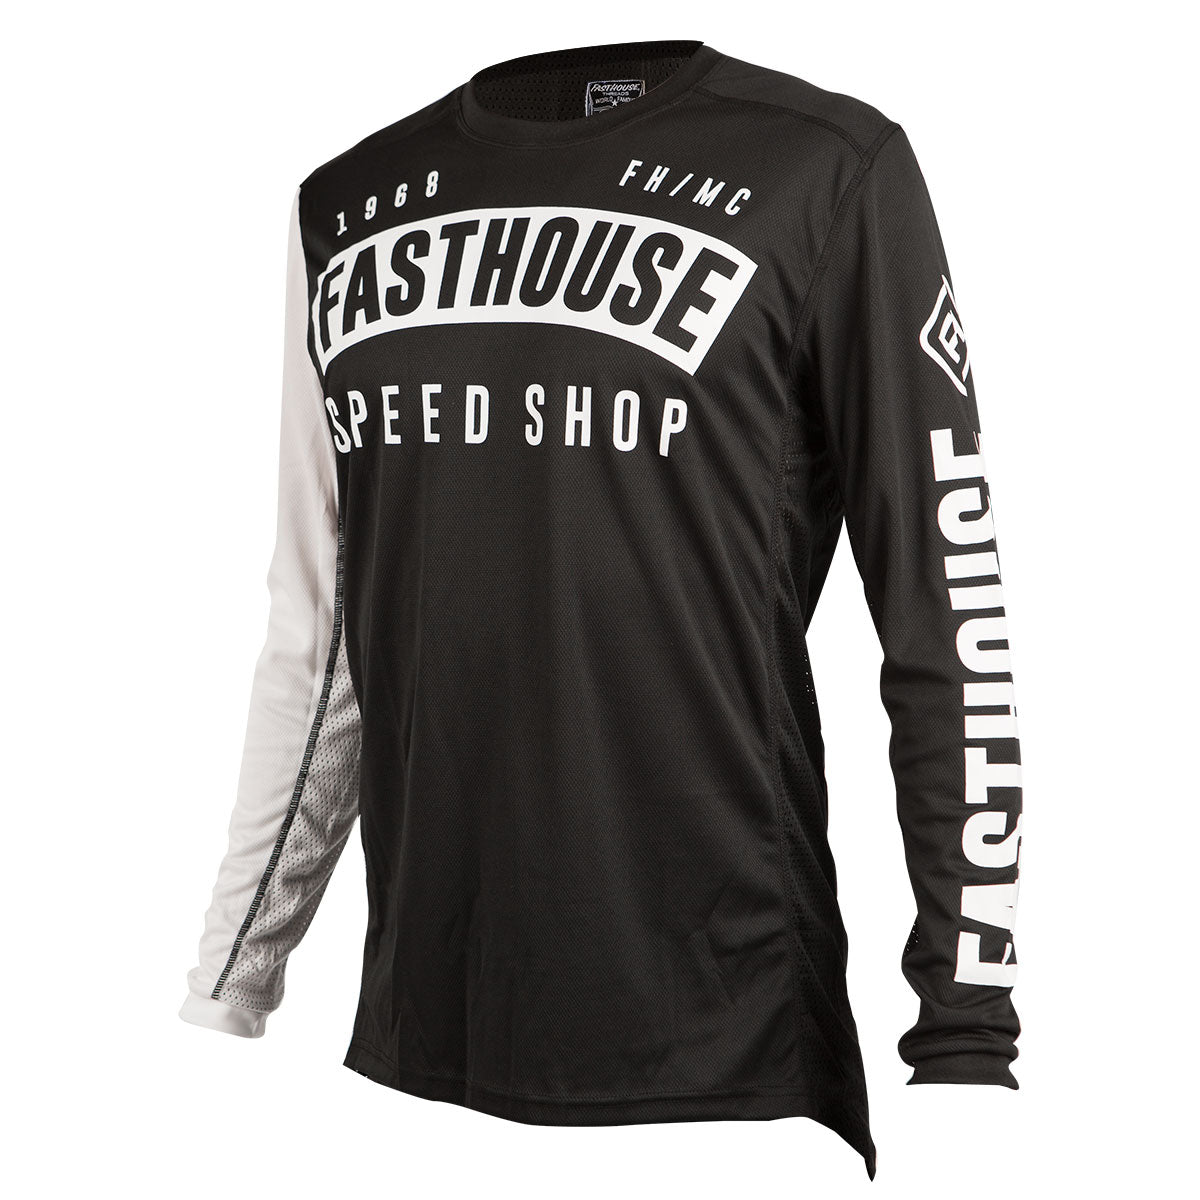 Fasthouse - Block L1 Jersey - Black